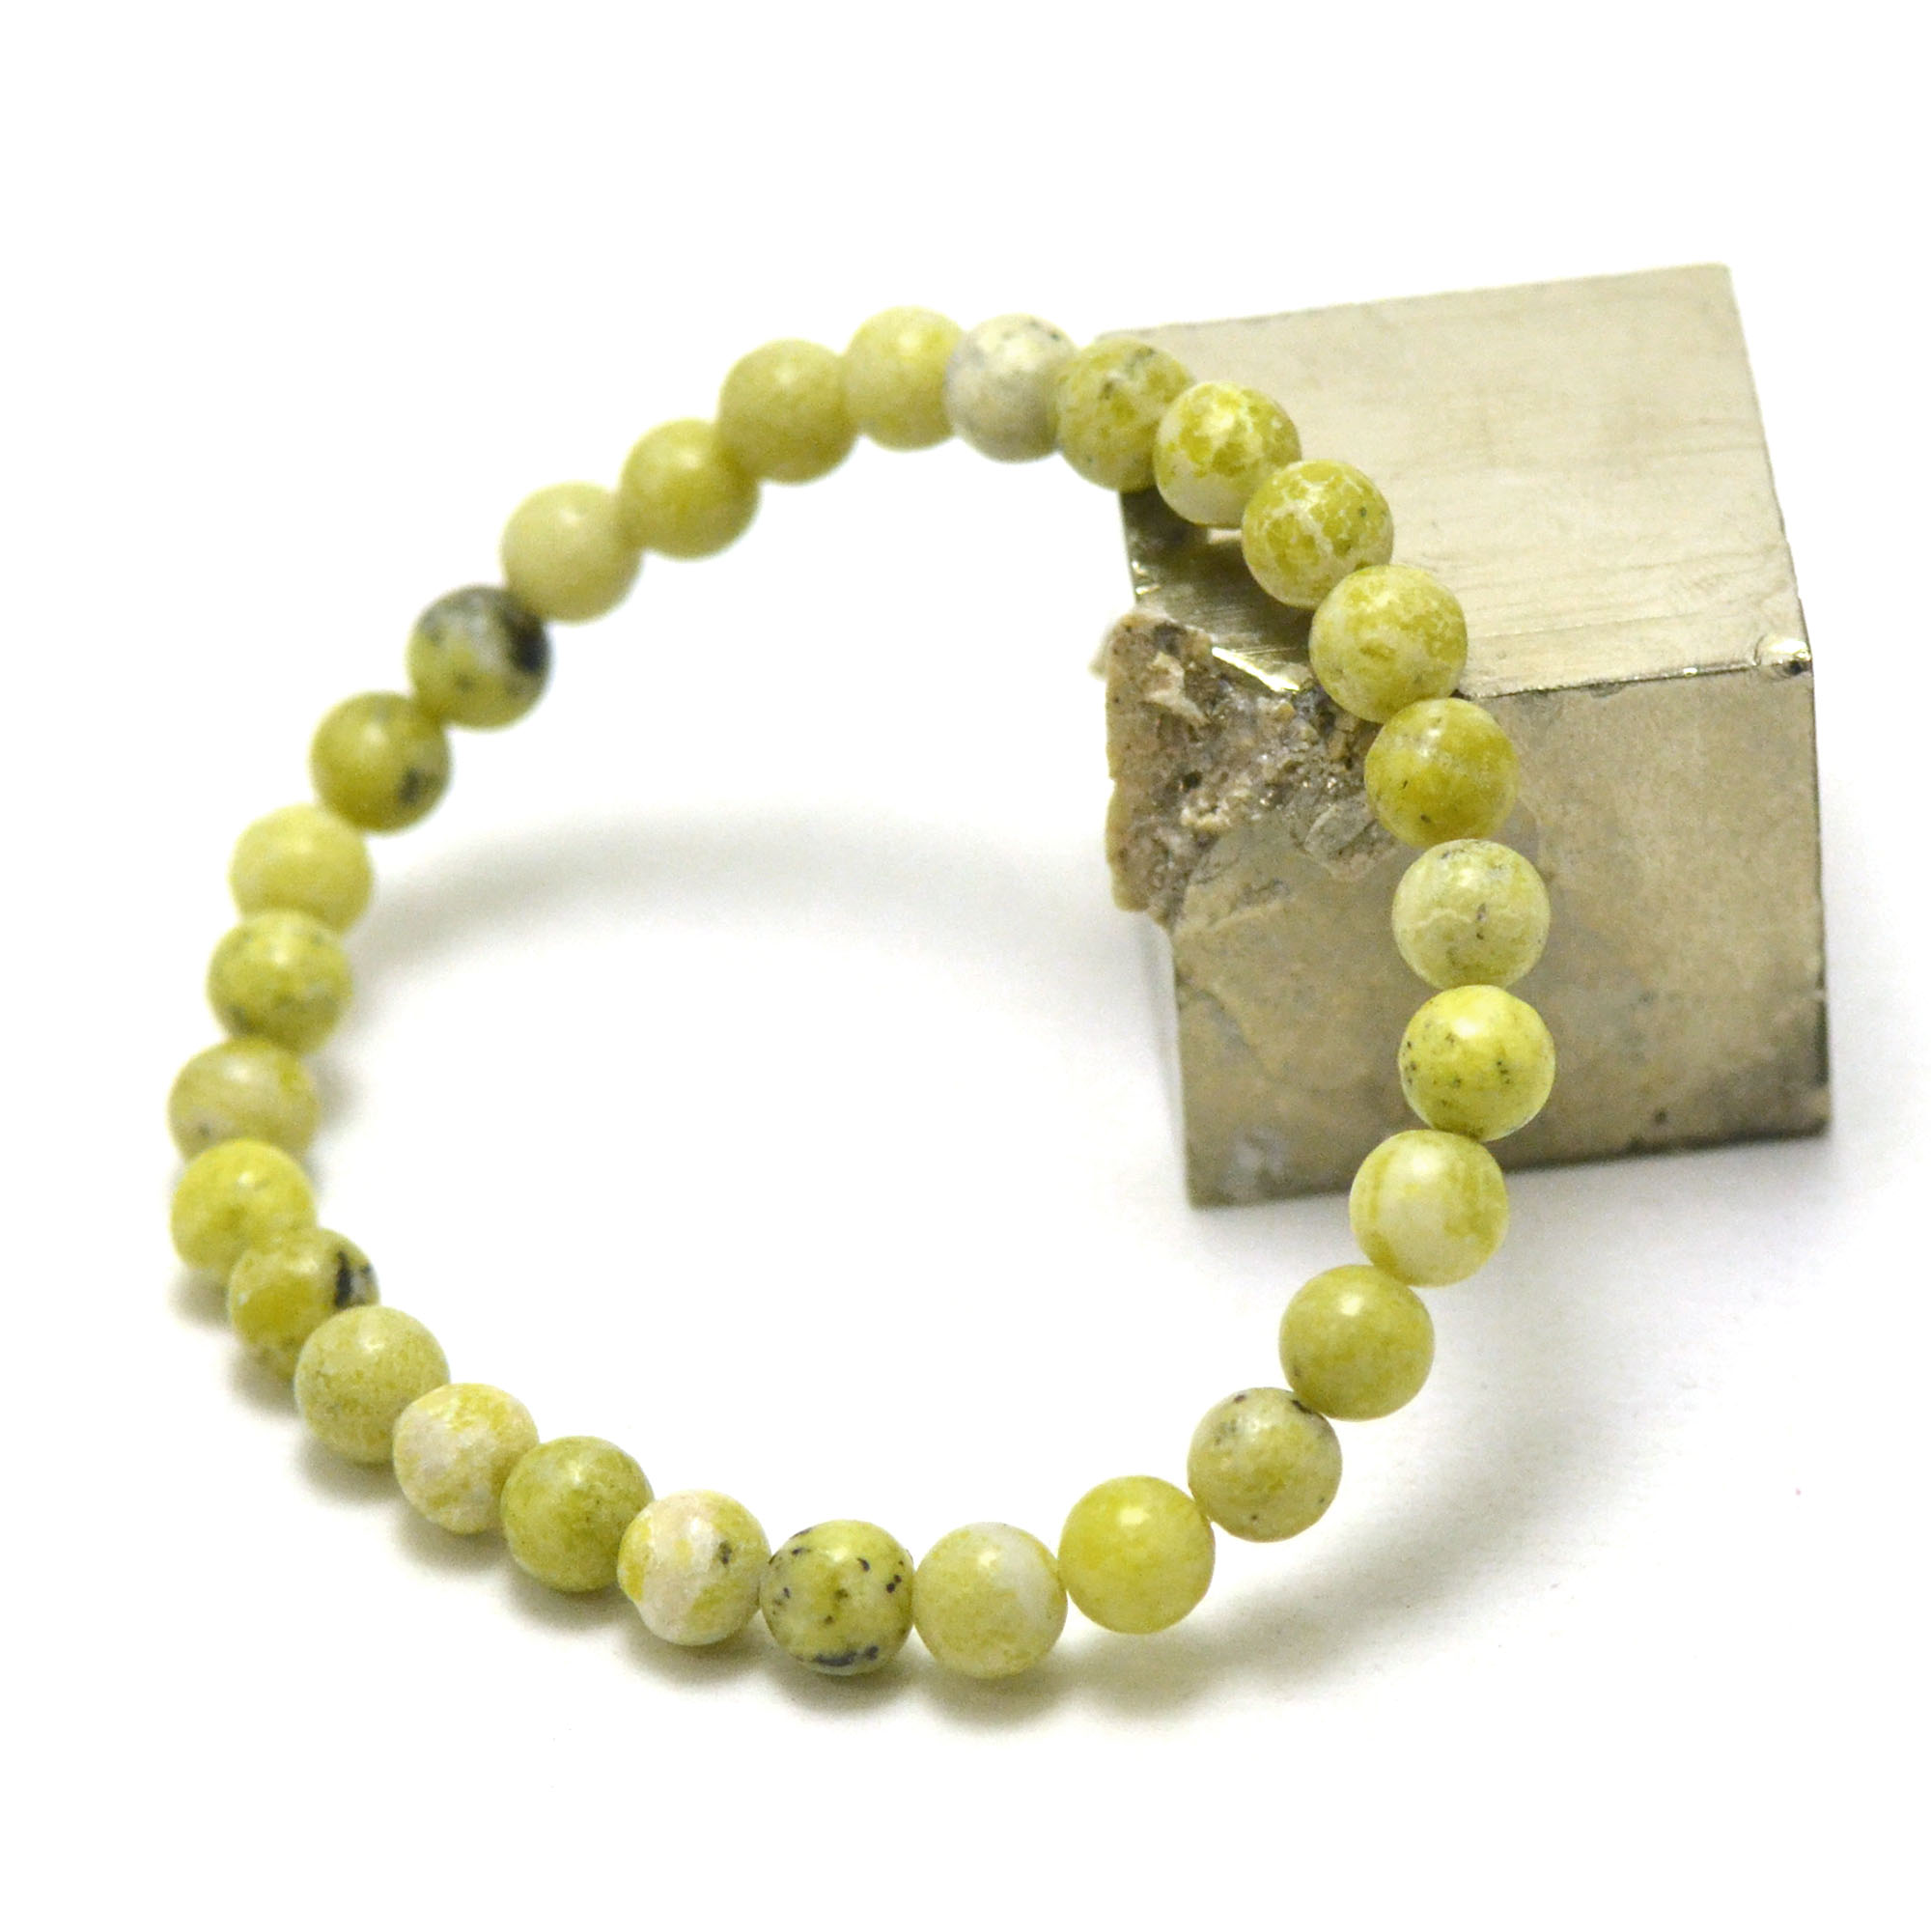 bracelet chrysoprase citron  ronde 6 mm, pierre naturelle